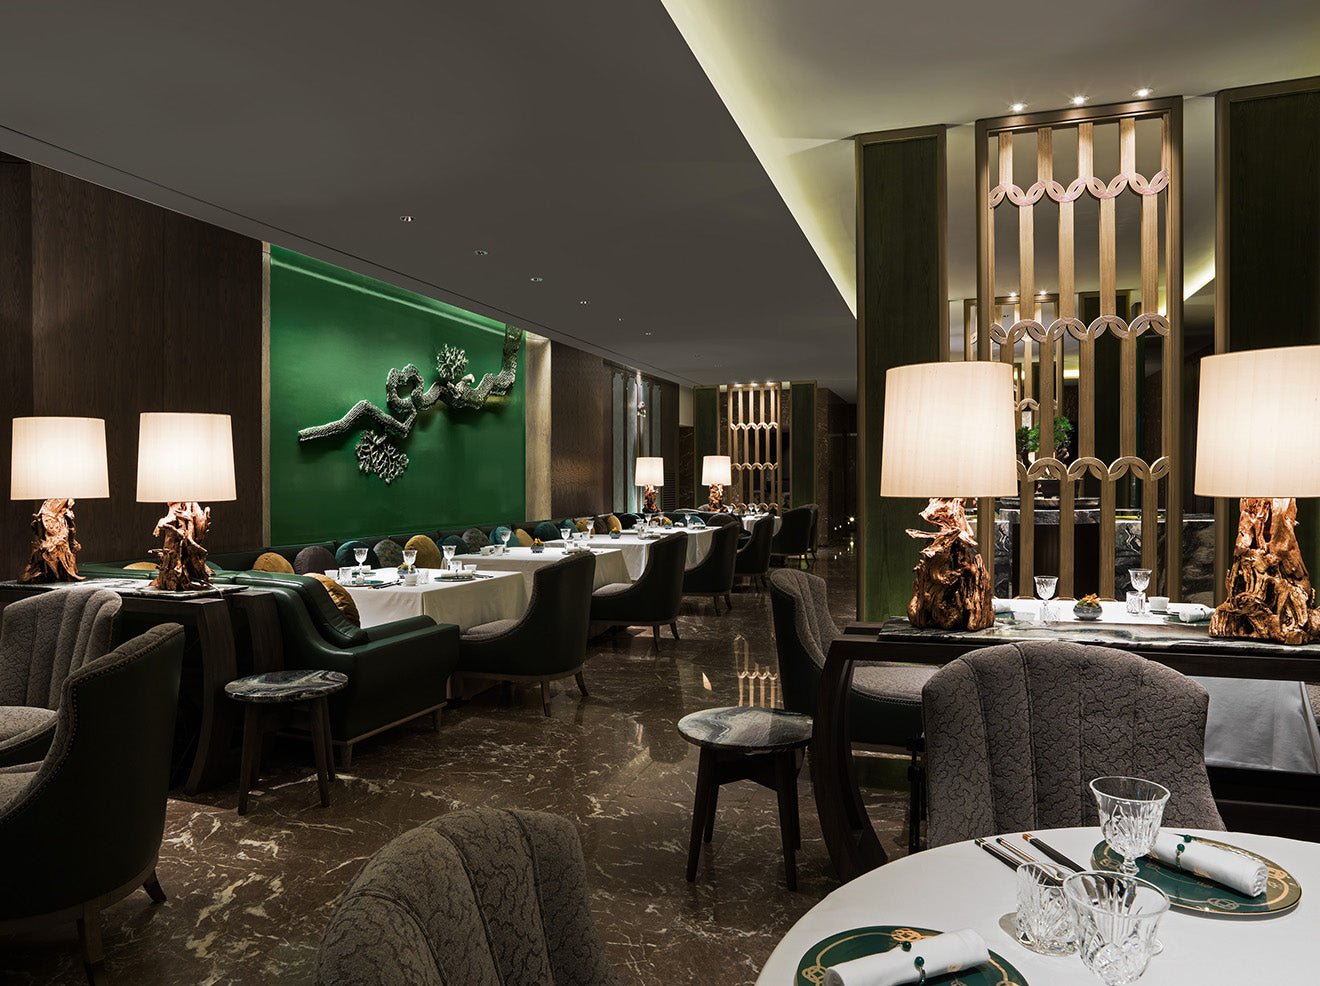 AFSO Andre Fu Interior Design Yu Yuan Restaurant Green interior decor